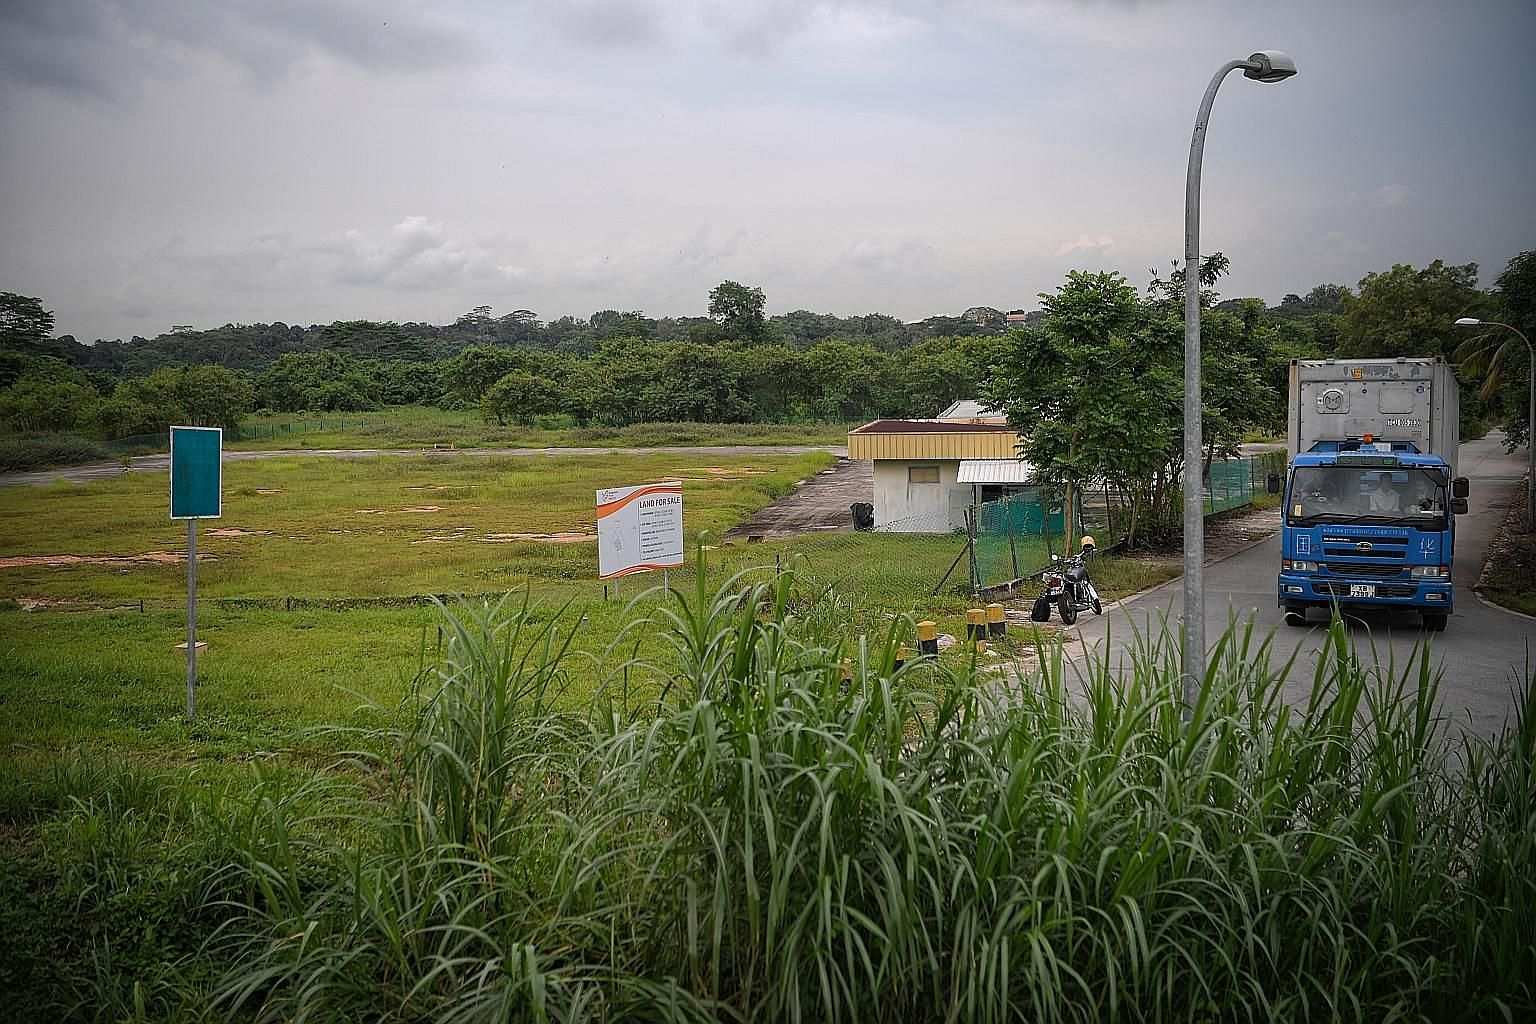 The land (left) set aside for bean-sprout farming at Sungei Tengah Road. The bean sprout is nutritious and used in many local dishes. ST PHOTO: MARK CHEONG